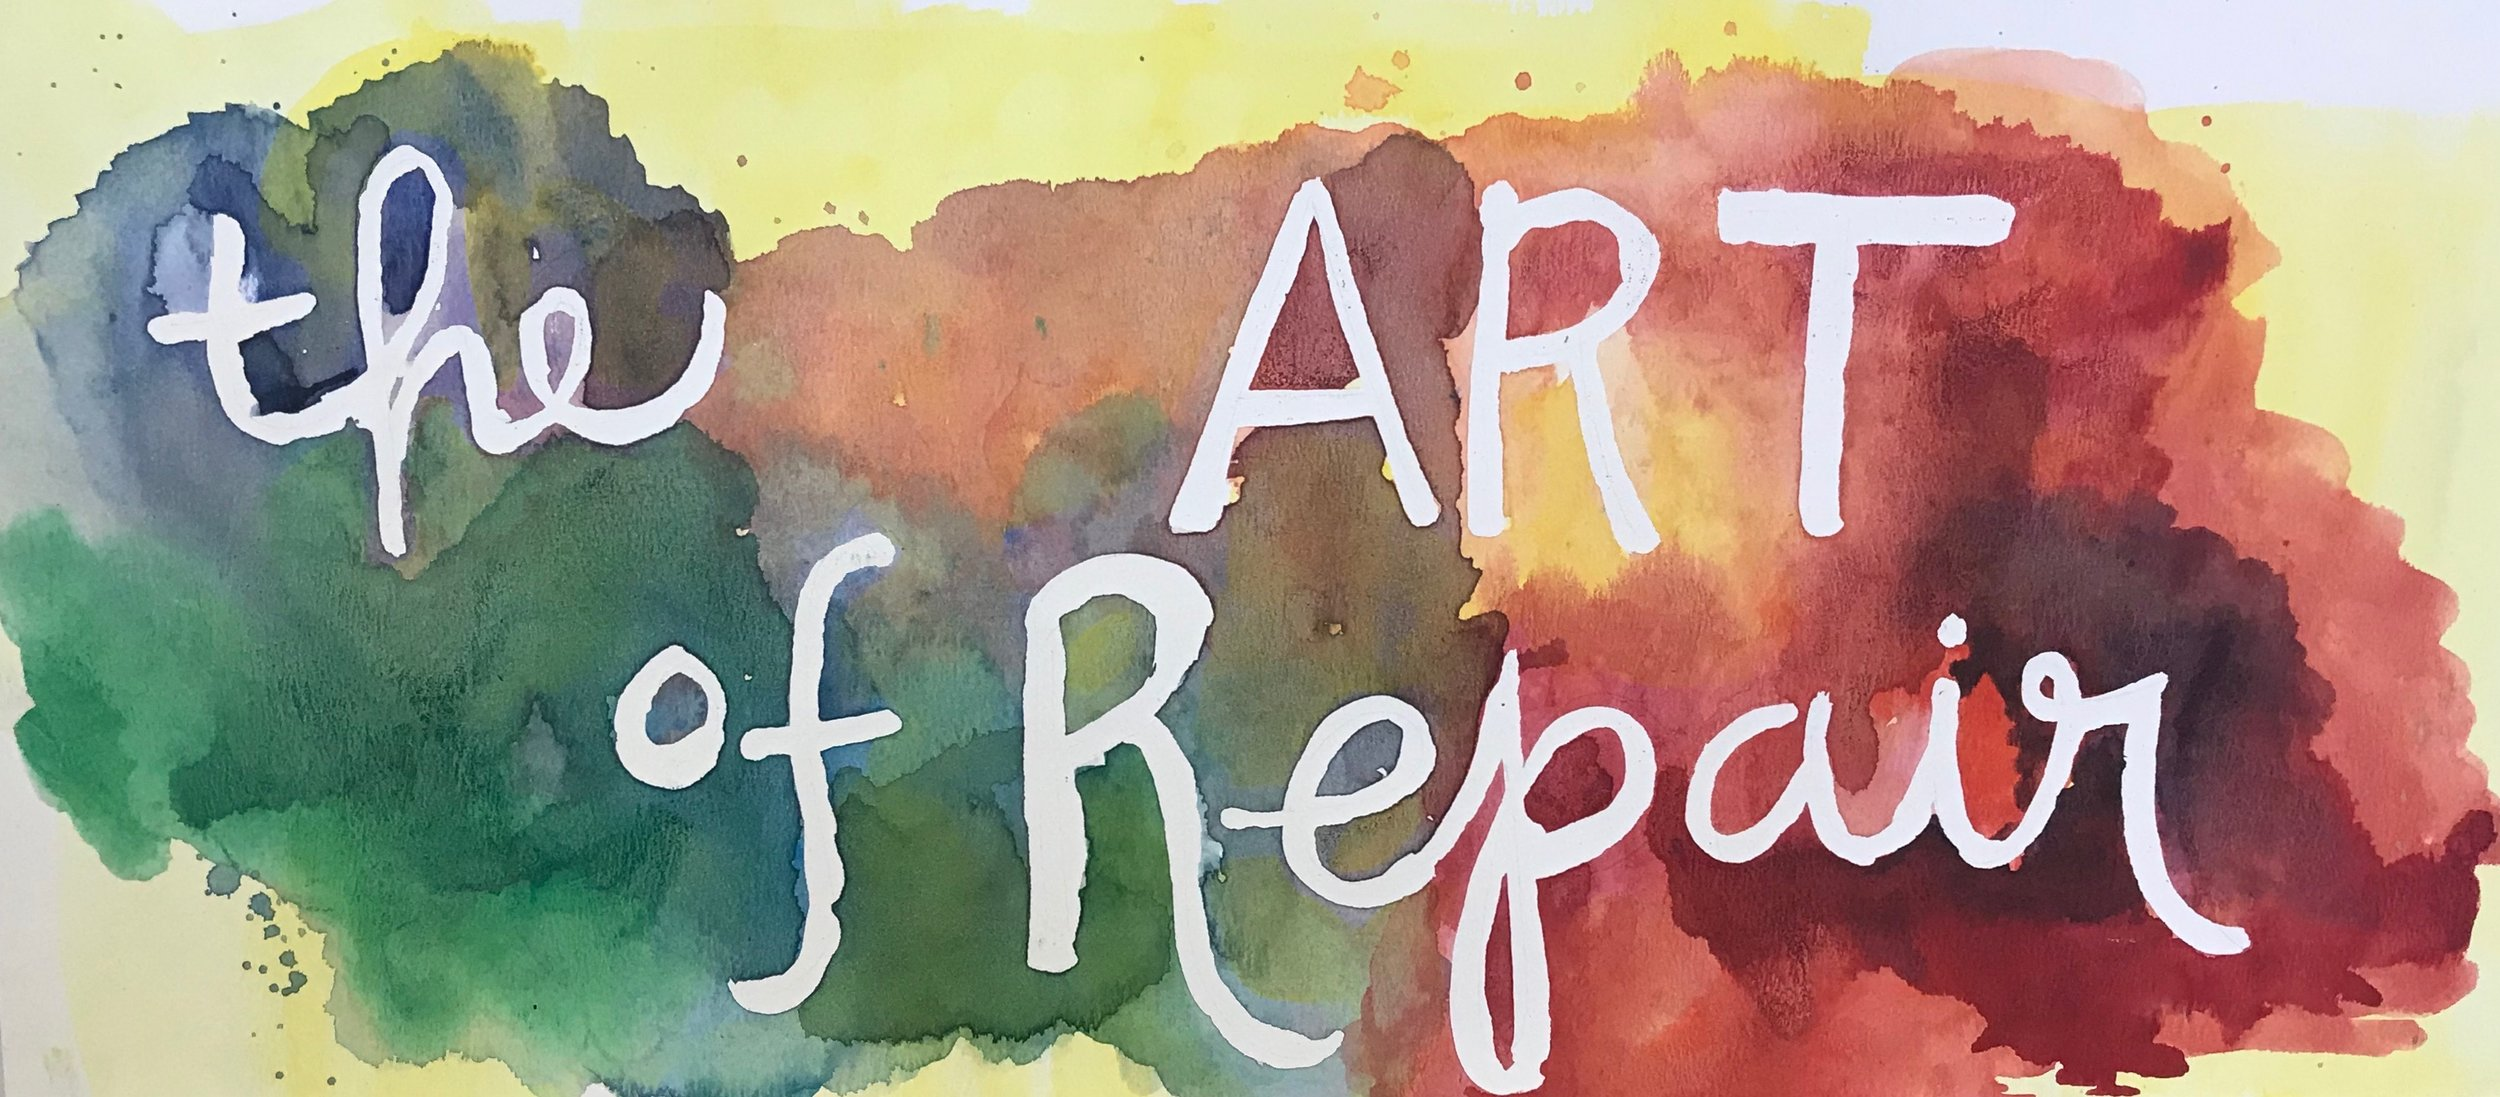 THE ART OF REPAIR: A MIDDLE SCHOOL ELECTIVE CLASS   By  Shraddha Soparawala,  2018 - 2019 Teaching Fellow & Math Teacher, ASCEND Middle School, Oakland